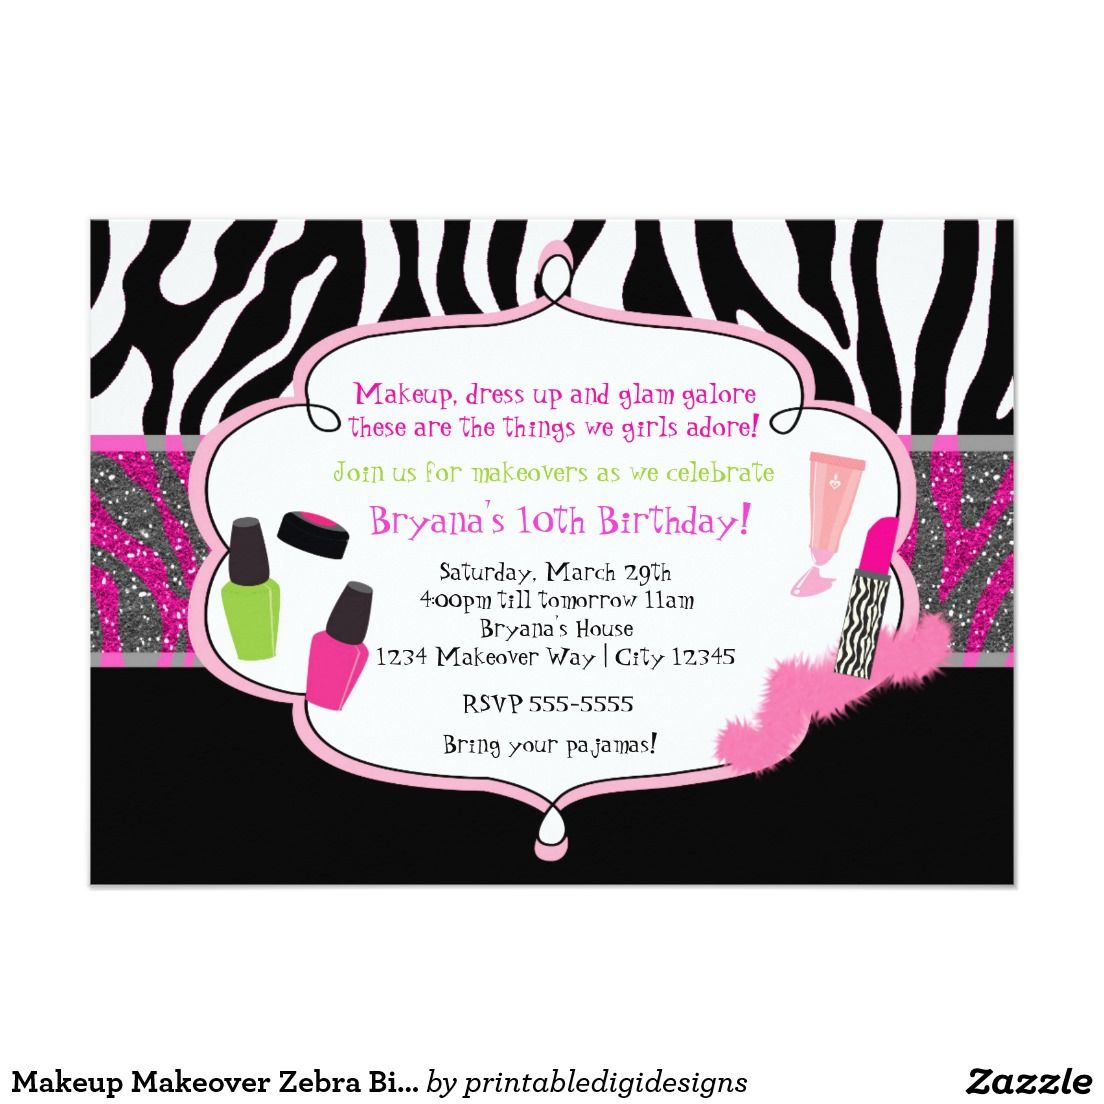 Makeup Makeover Zebra Birthday Party Invitation Birthday Party